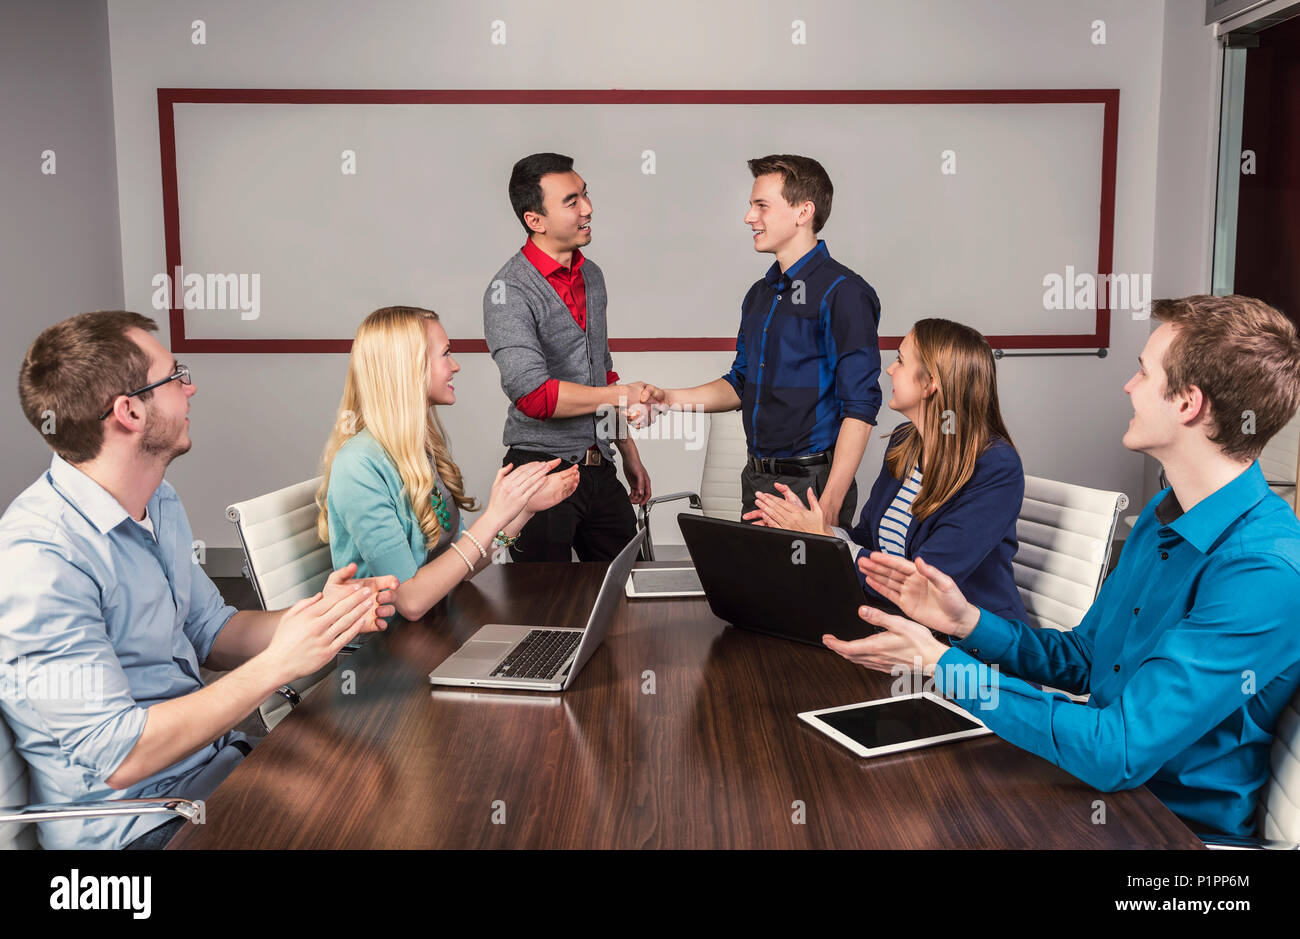 Young millennial business professionals working together in a conference room in a place of business and praising the efforts of one of their peers - Stock Image